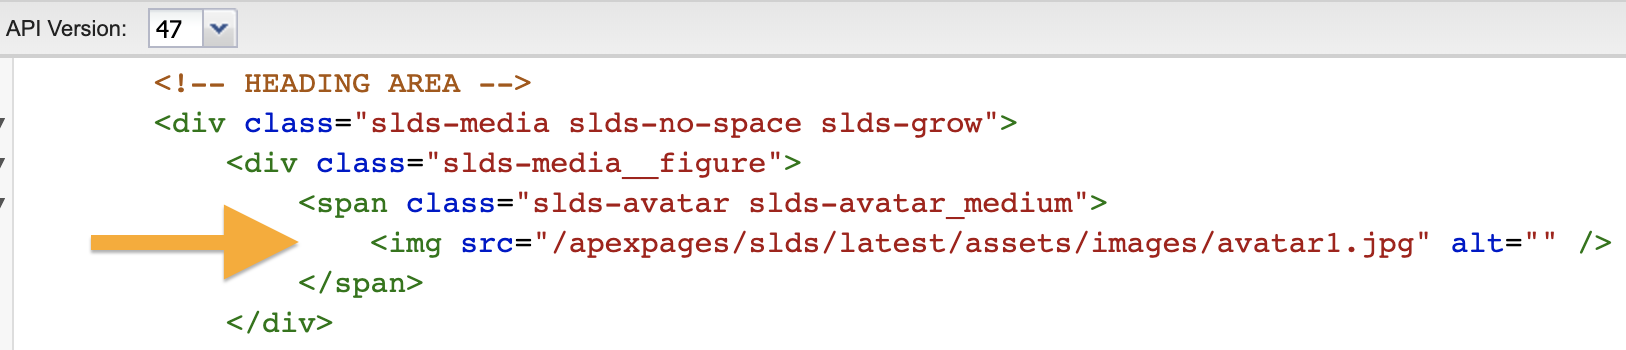 Trailhead: Images do not appear on SLDS